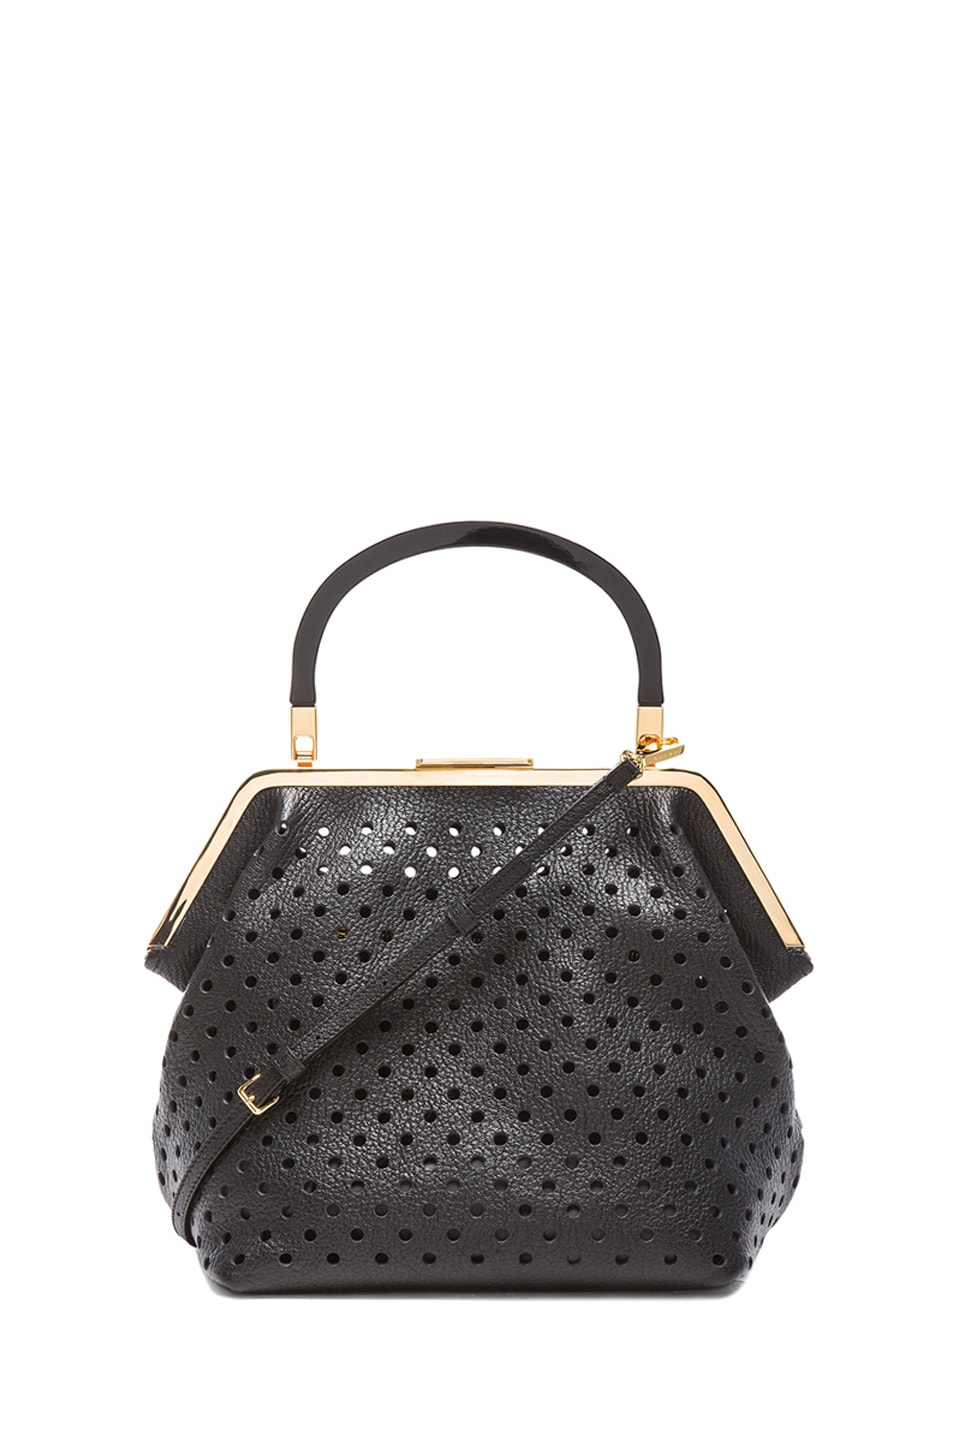 Image 1 of Marni Perforated Leather Bag in Coal